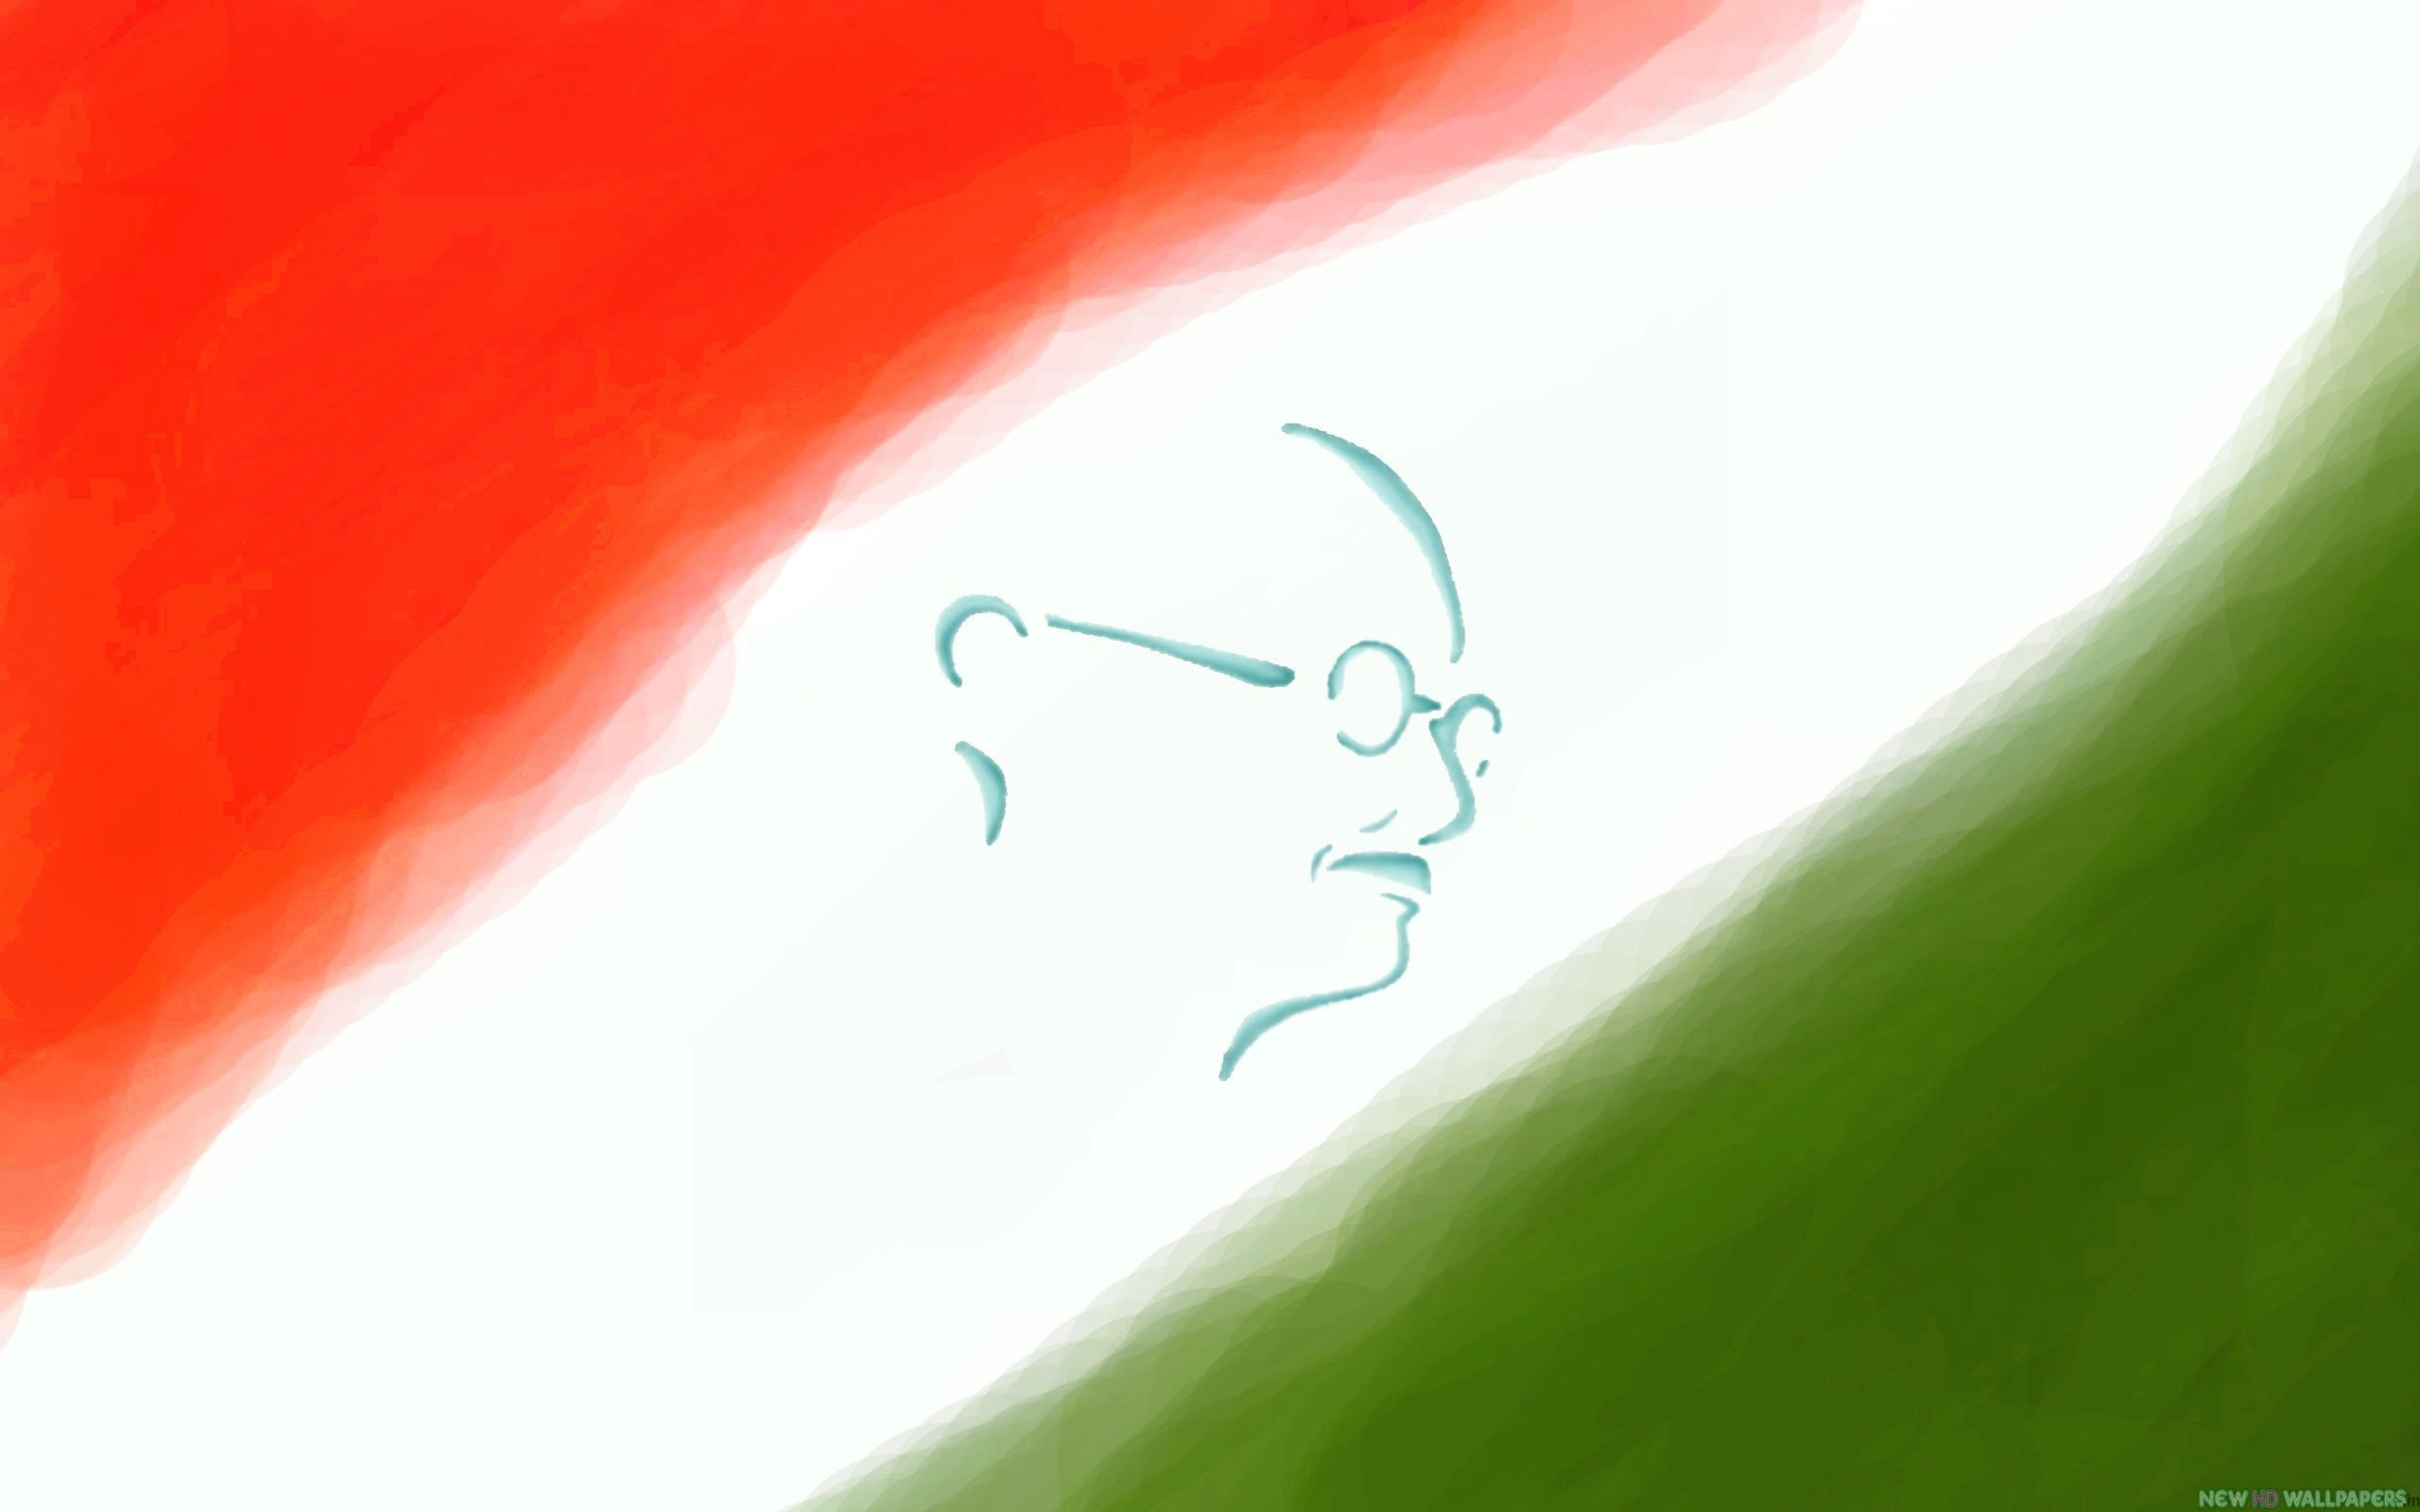 beautiful flag mahatma ghandiji photo  beautiful flag mahatma ghandiji photo